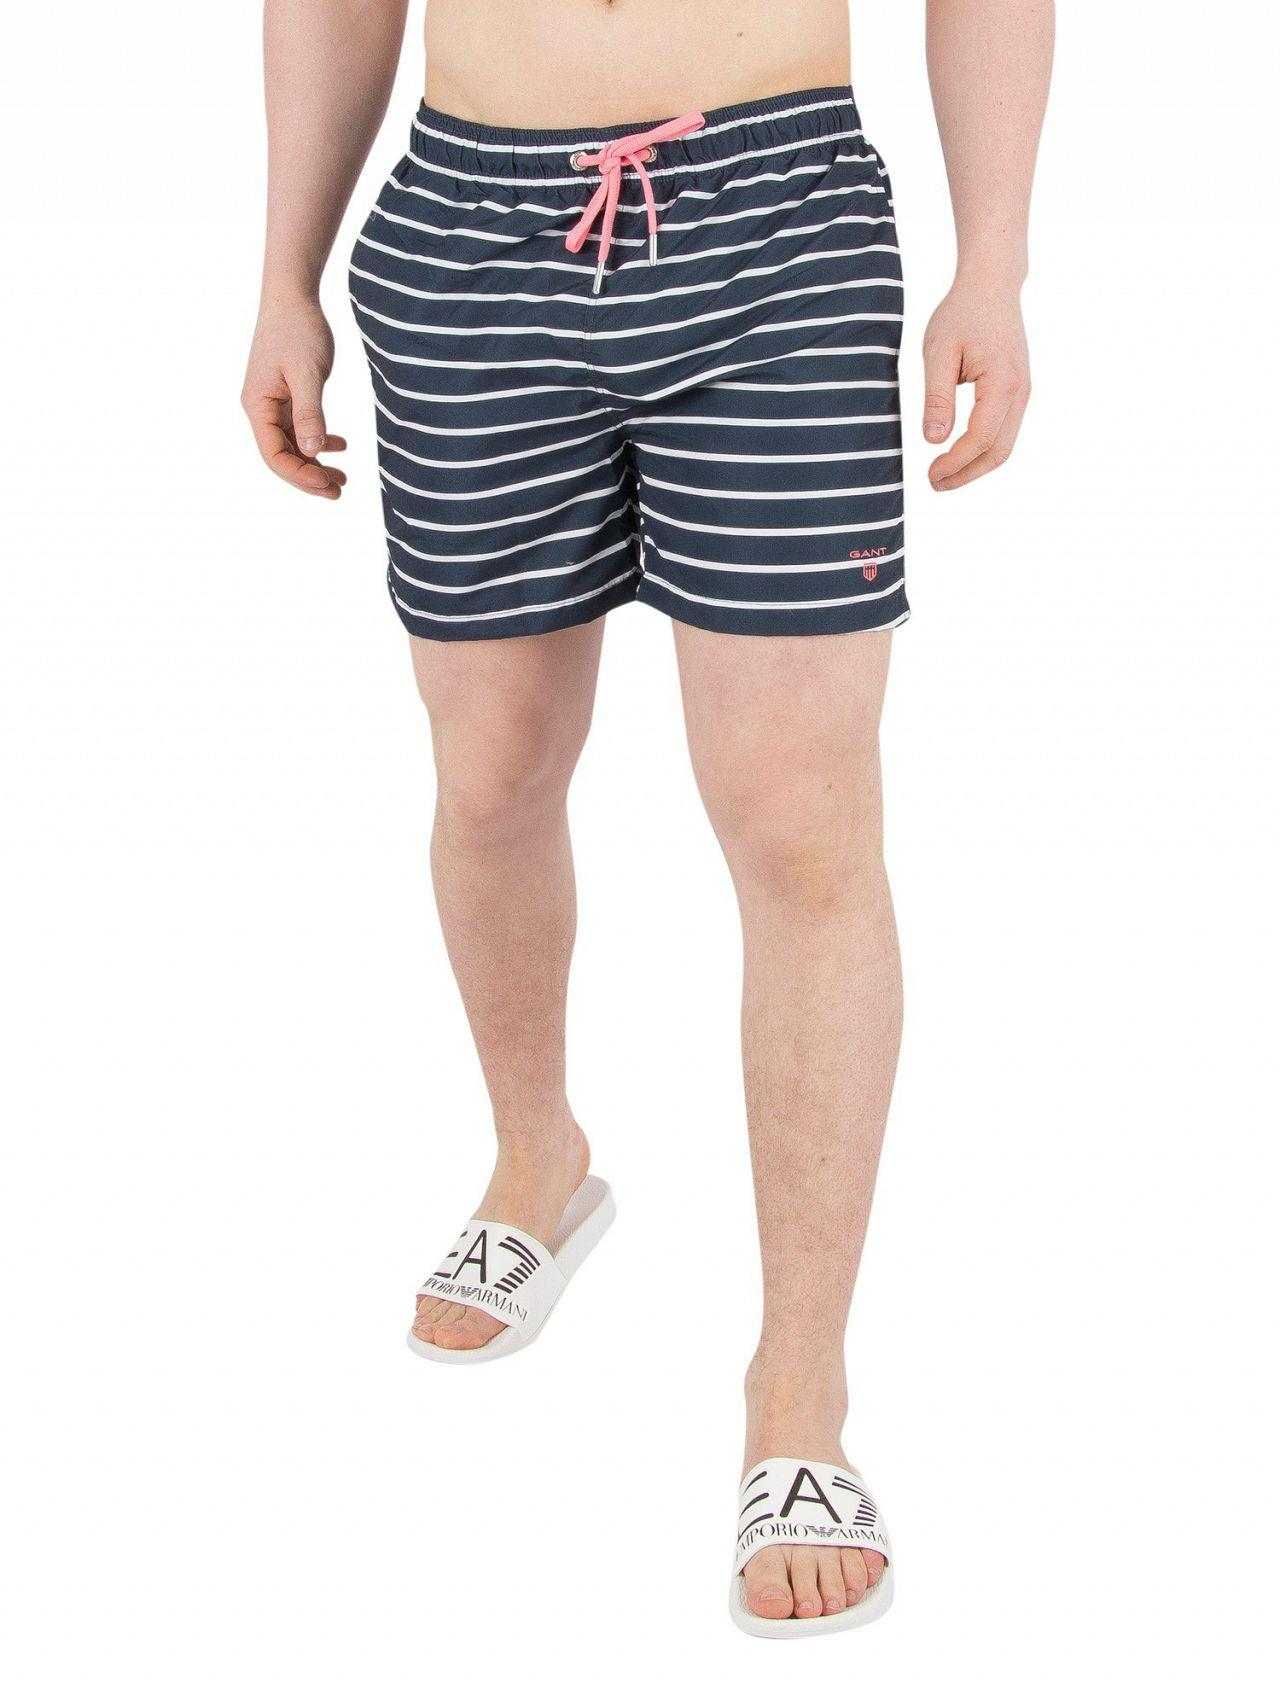 Breton Stripe Swim Shorts - Navy GANT Online Cheap Price Online Shop Free Shipping Supply Exclusive Online Clearance Explore DXLZMNyI